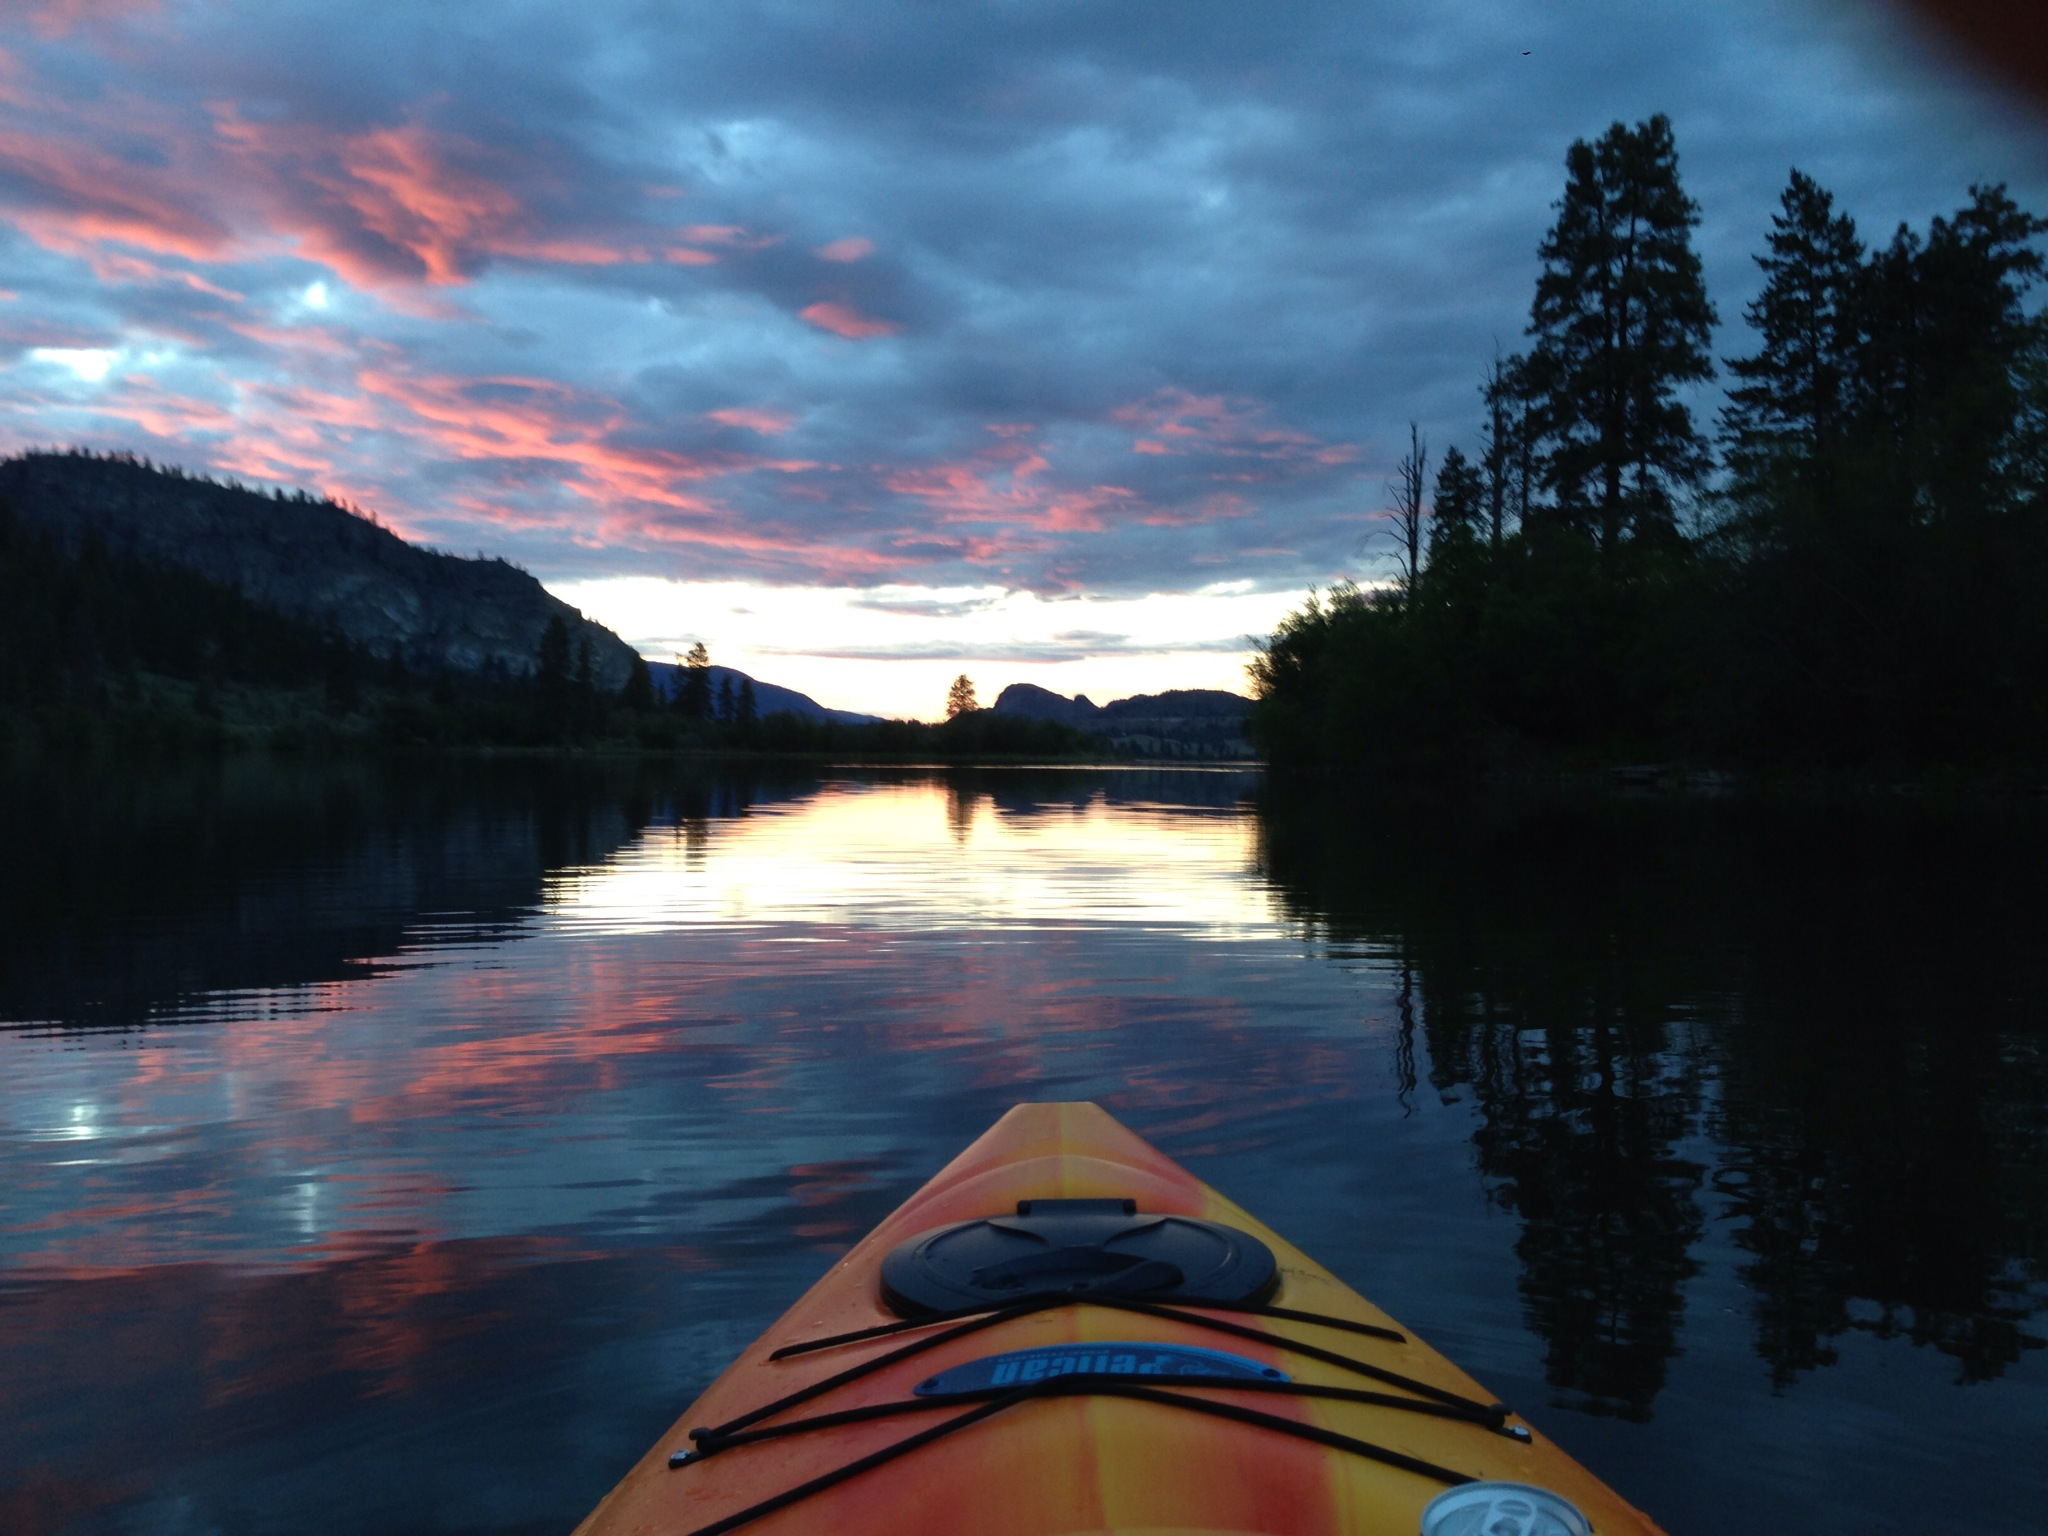 Kayaking West of the Island at Sunse